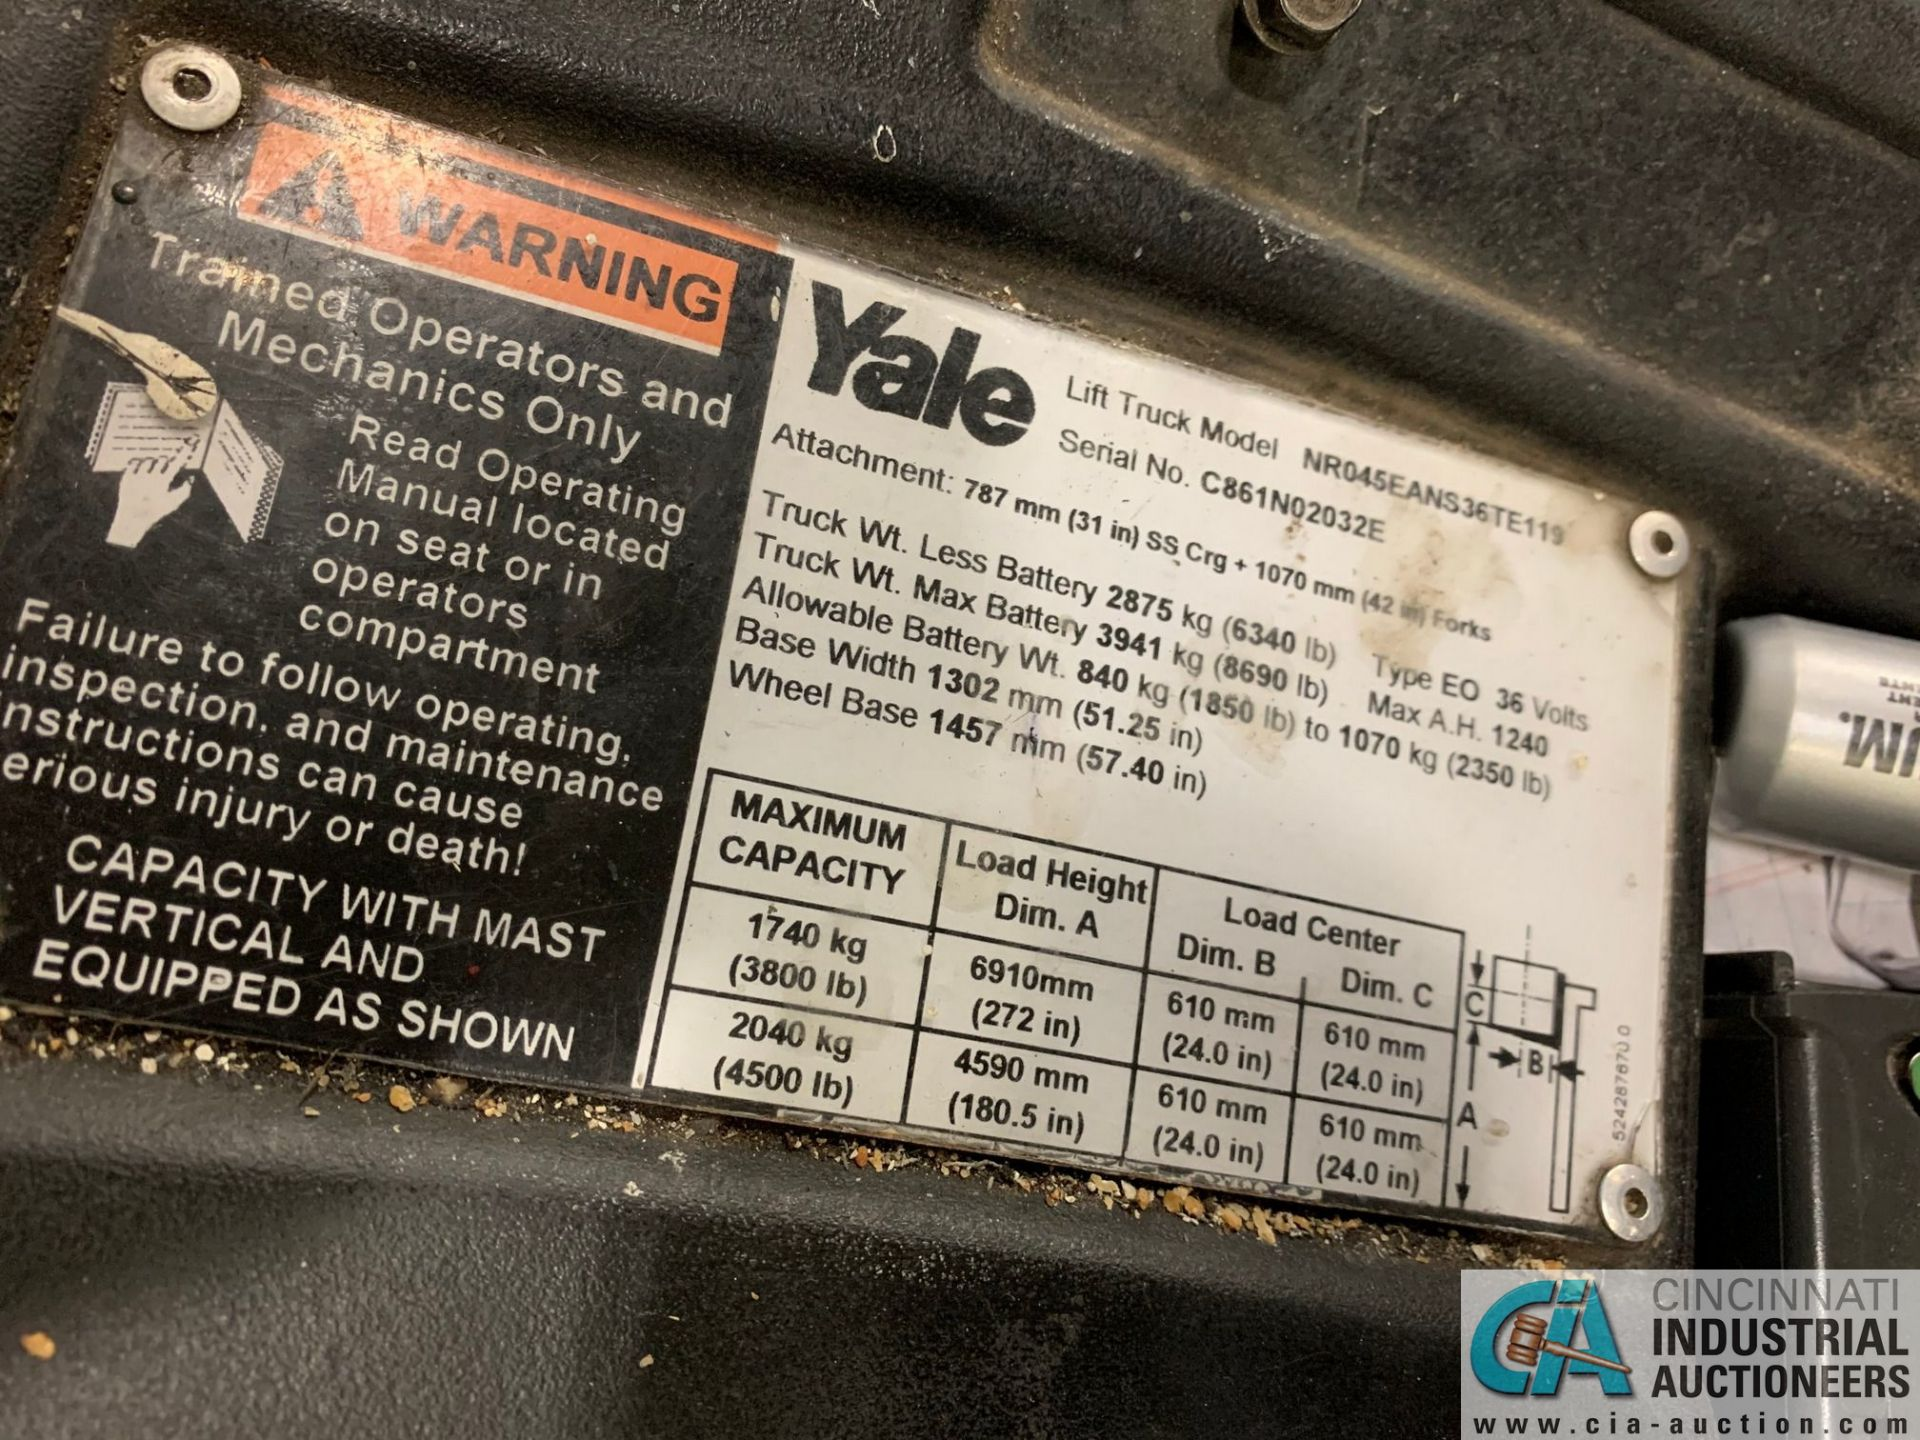 """4,500 LB. YALE MODEL NR045EANS36TE119 ELECTRIC REACH TRUCK; S/N C861N02032E, 272"""" MAX LIFT HEIGHT, - Image 3 of 7"""